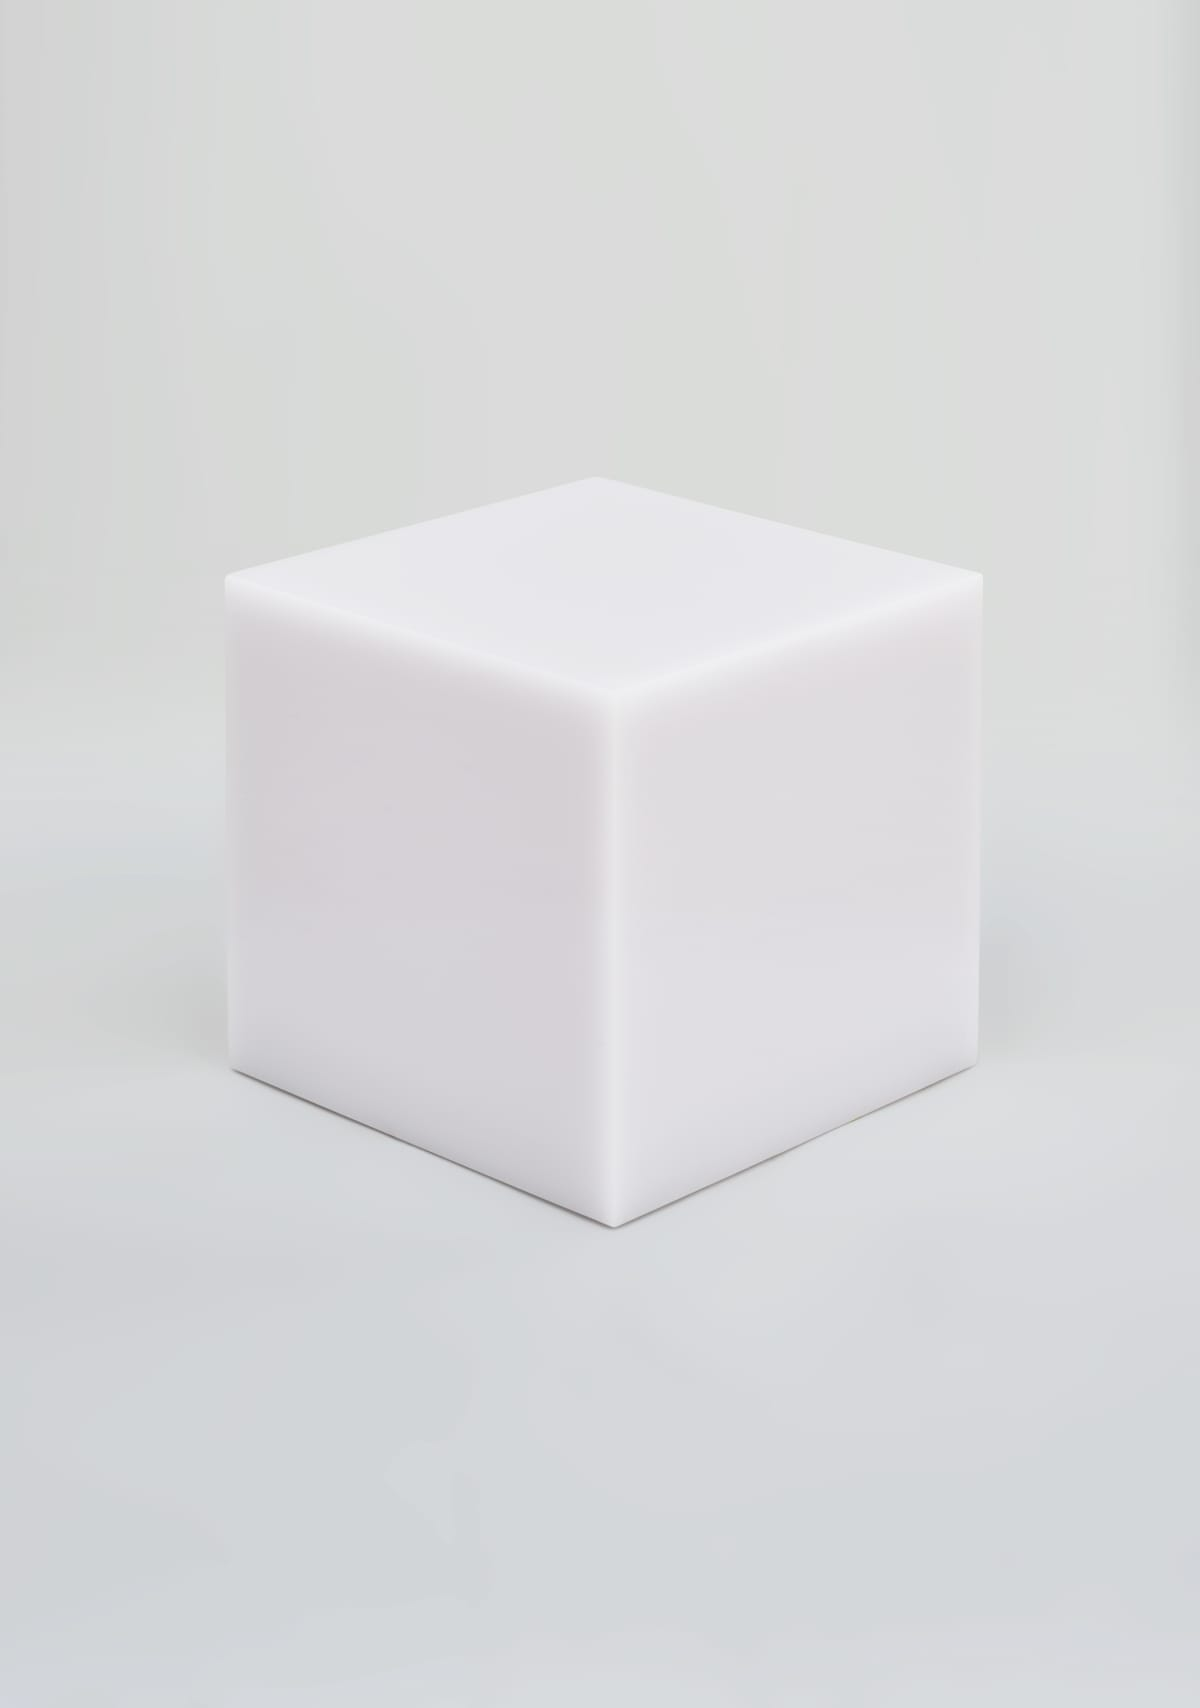 Sabine Marcelis Candy Cube Marshmellow Polished, cast polyester resin/tempered steel, wax finish 50 x 50 x 50 cm